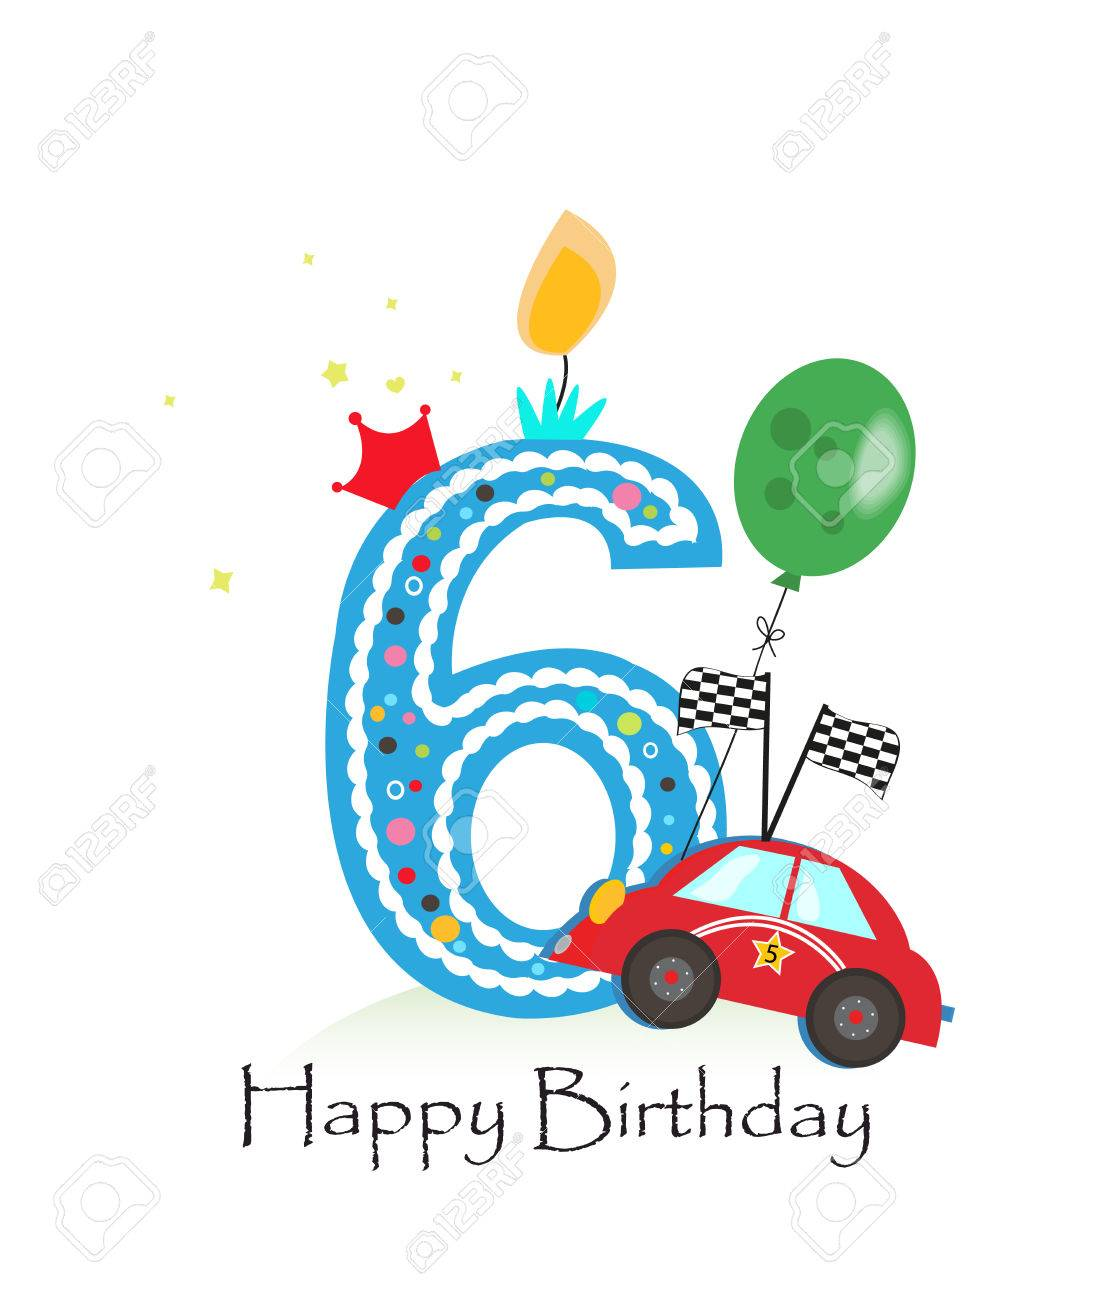 Happy Sixth Birthday Candle Baby Boy Greeting Card With Race Royalty Free Cliparts Vectors And Stock Illustration Image 66080334